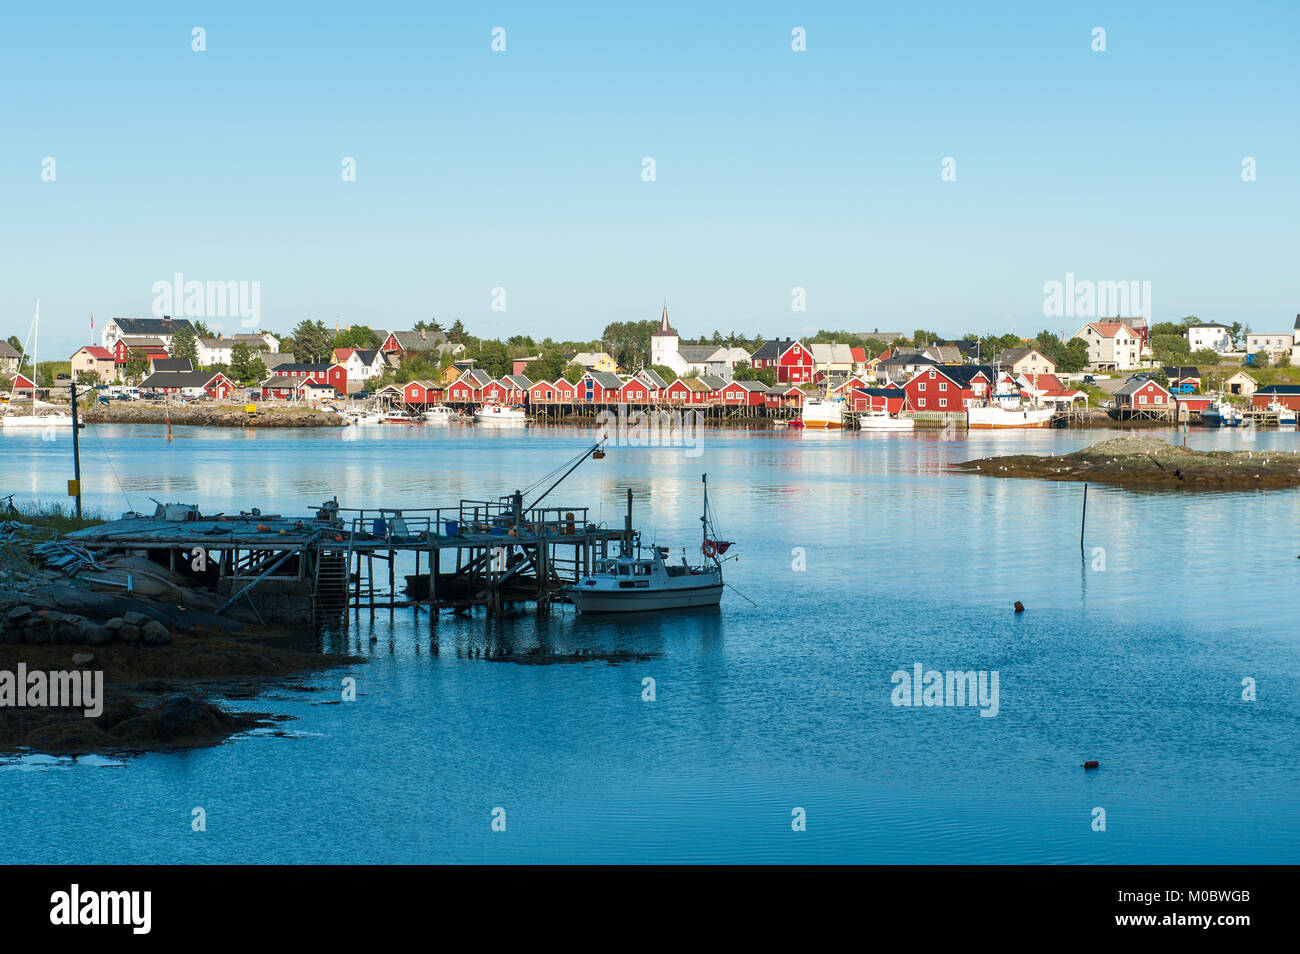 Nordic summer evening on July 4, 2011 in Reine. Reine is a picturesque fishing village and a popular travel destination - Stock Image